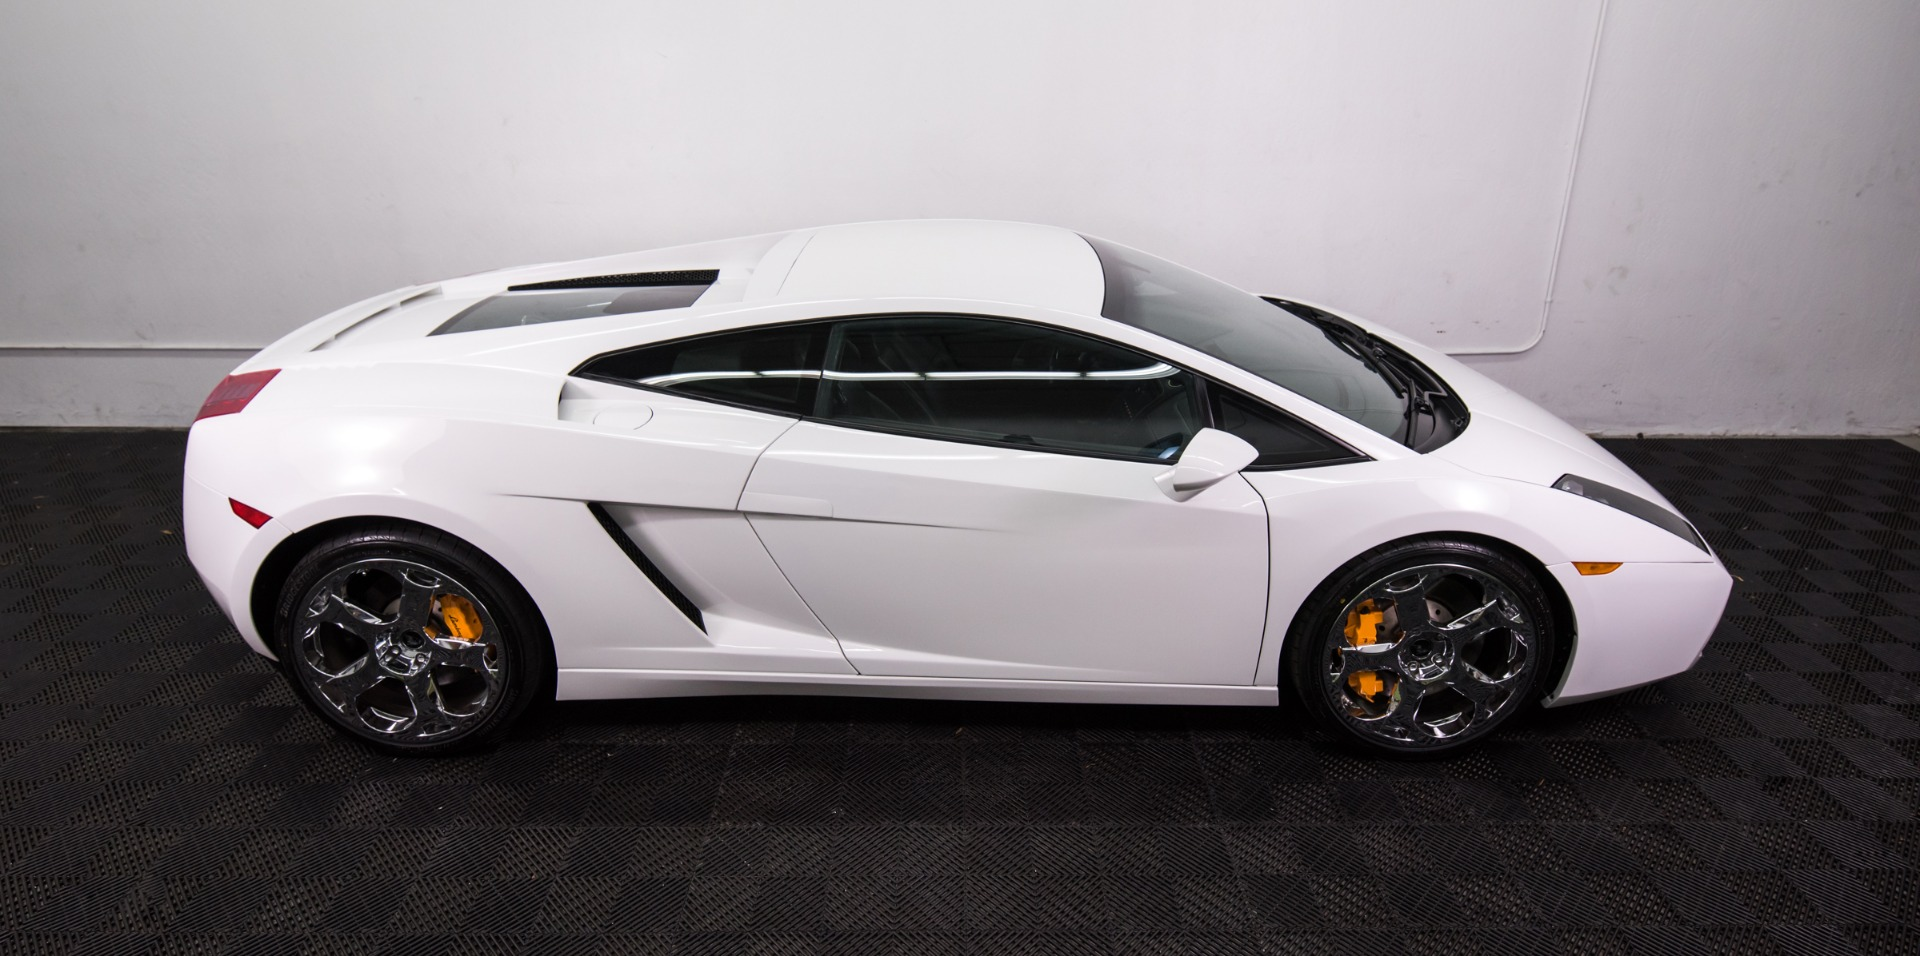 Used 2004 Lamborghini Gallardo Used 2004 Lamborghini Gallardo for sale Sold at Response Motors in Mountain View CA 7